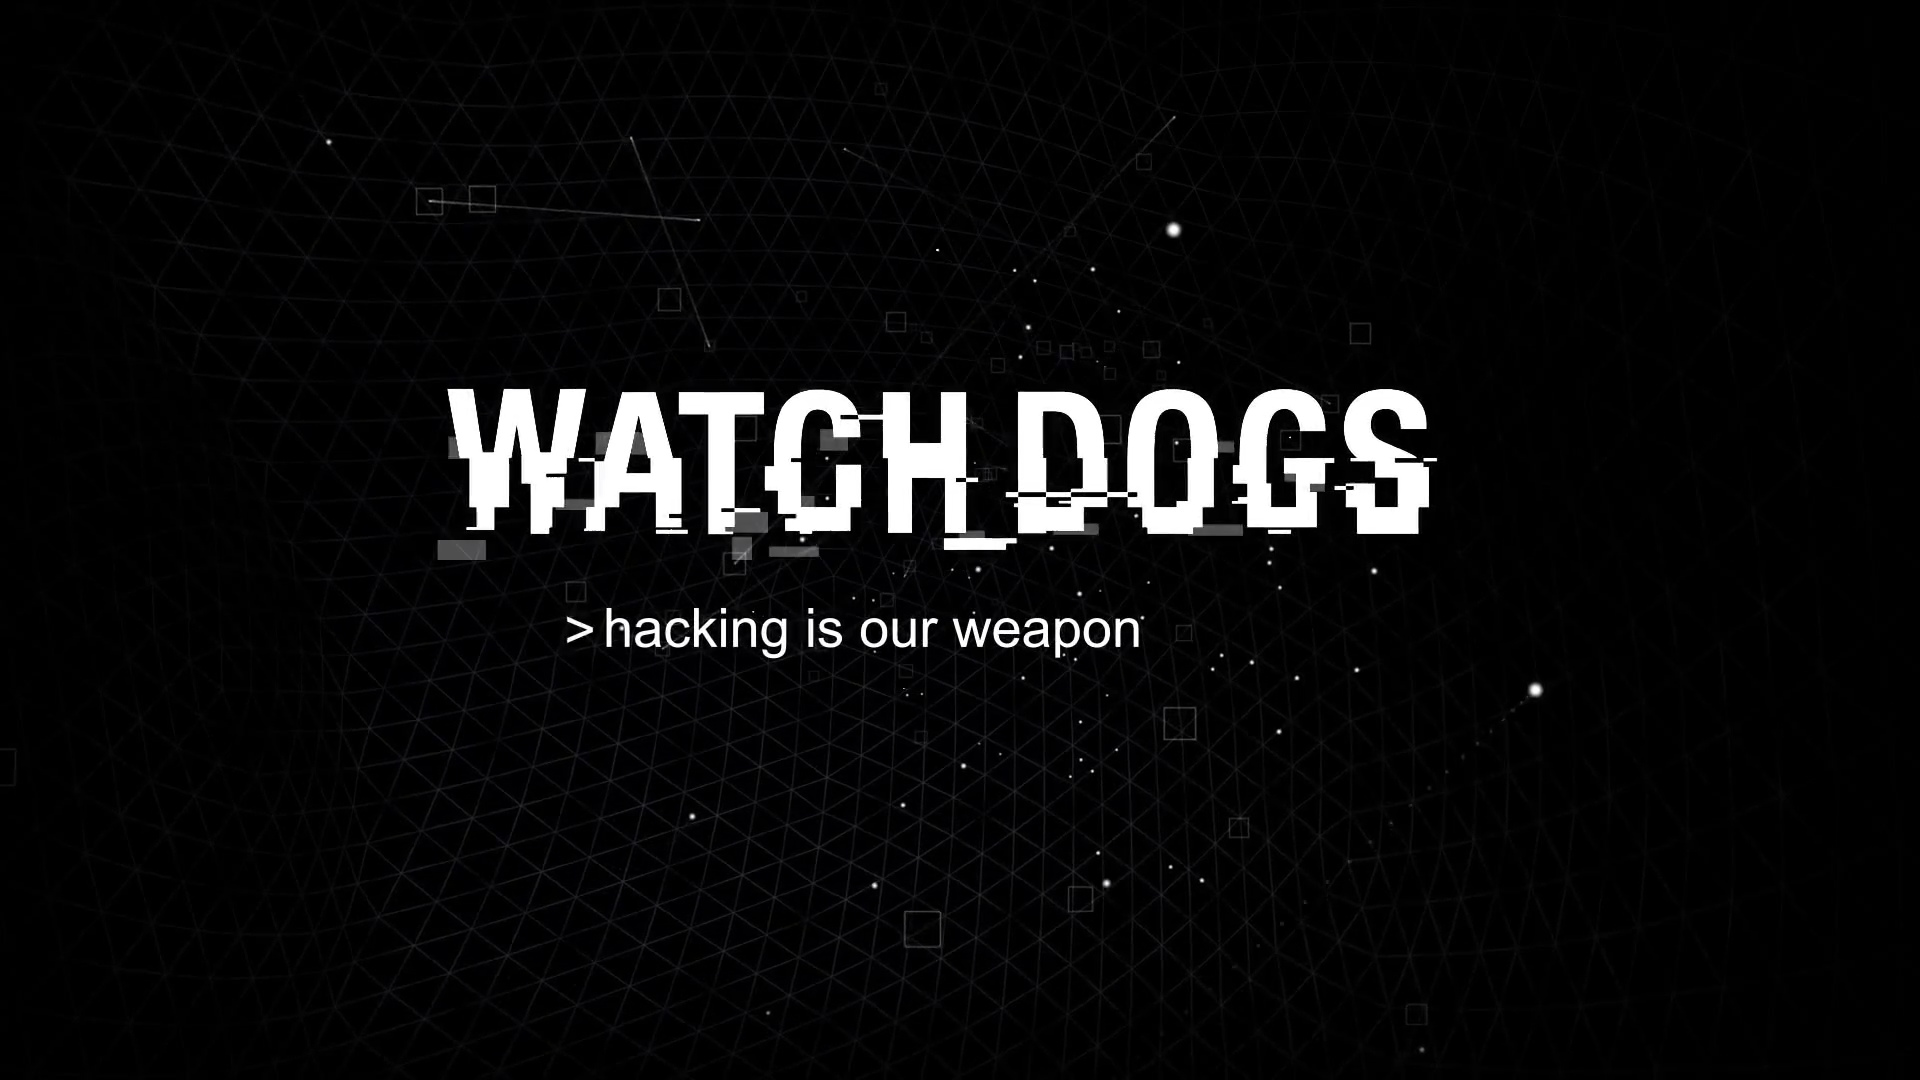 Watch Dogs Hd Wallpaper Background Image 1920x1080